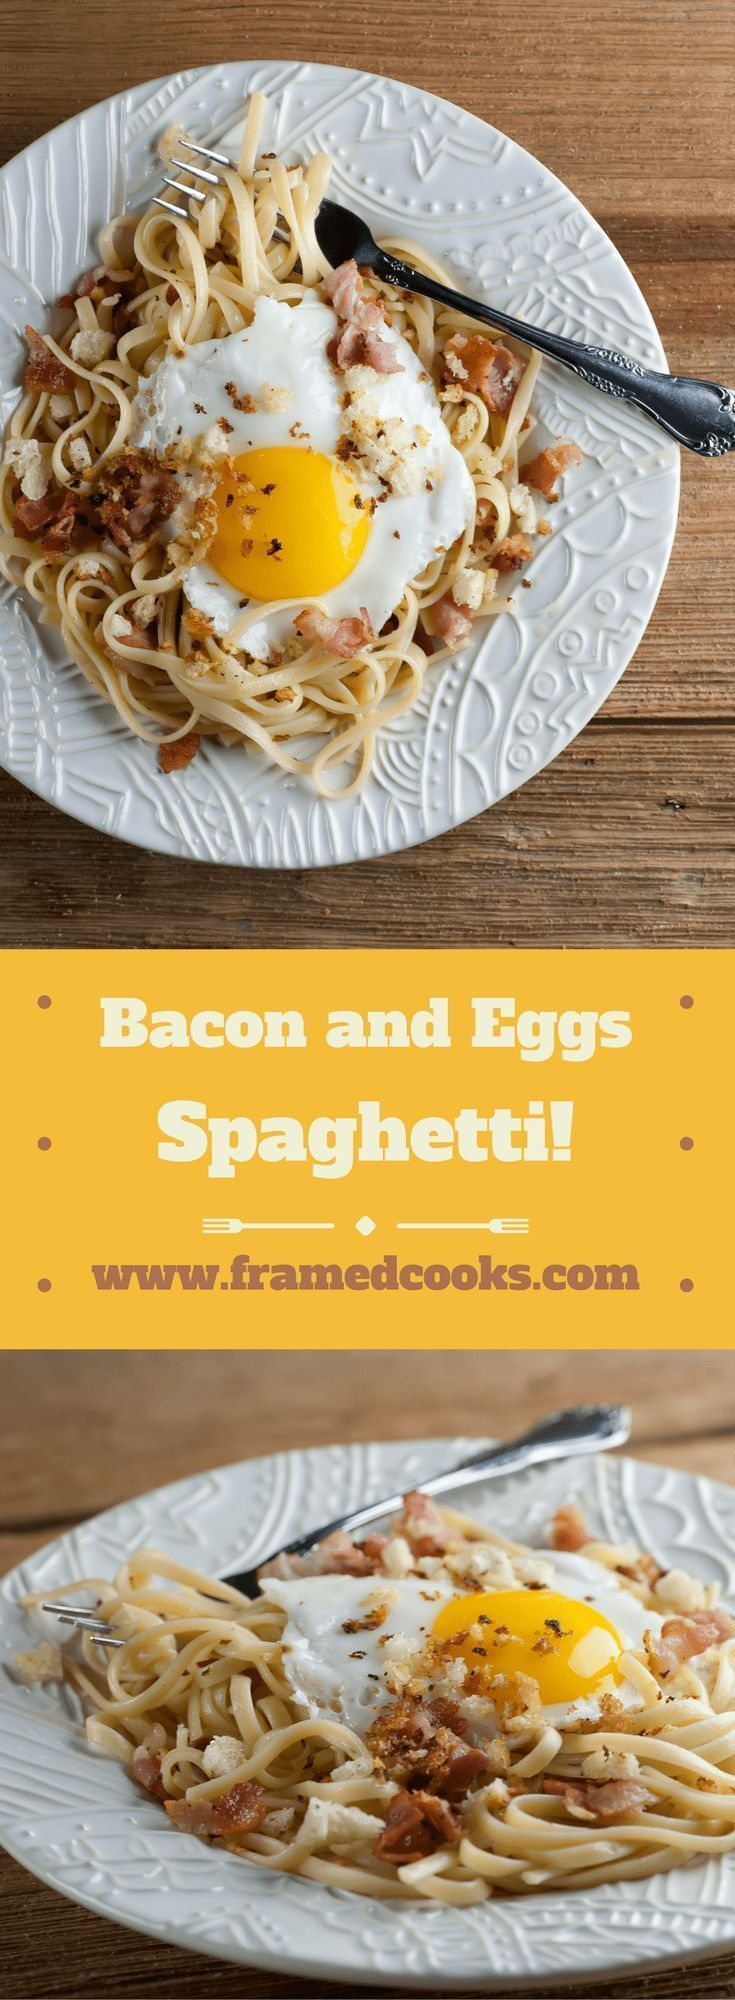 Bacon and Eggs Spaghetti - Framed Cooks Bacon and eggs arent just for breakfast anymore - not when